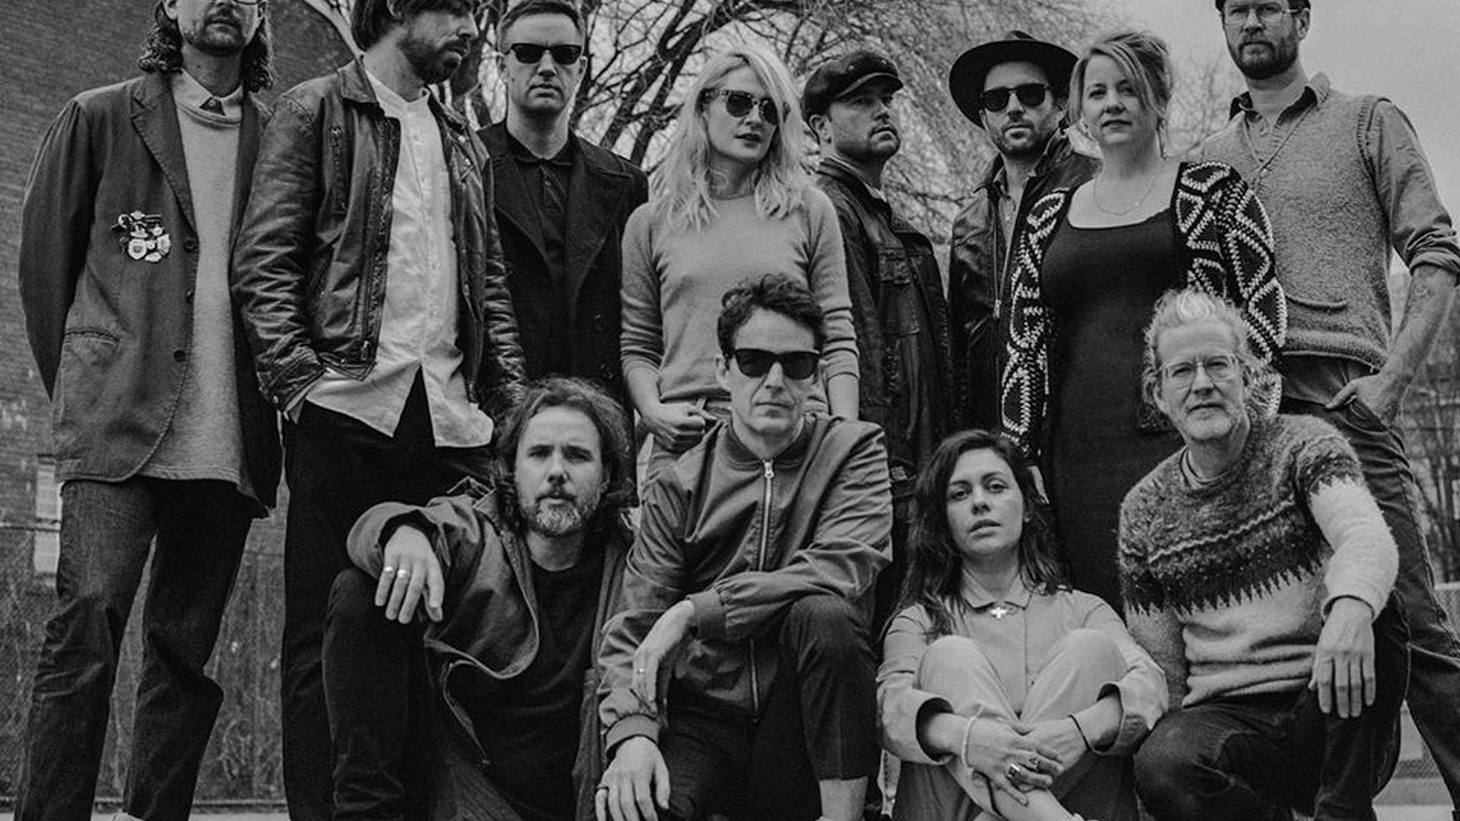 Canadian collective Broken Social Scene returns with their first new album in seven years and they sound better than ever.